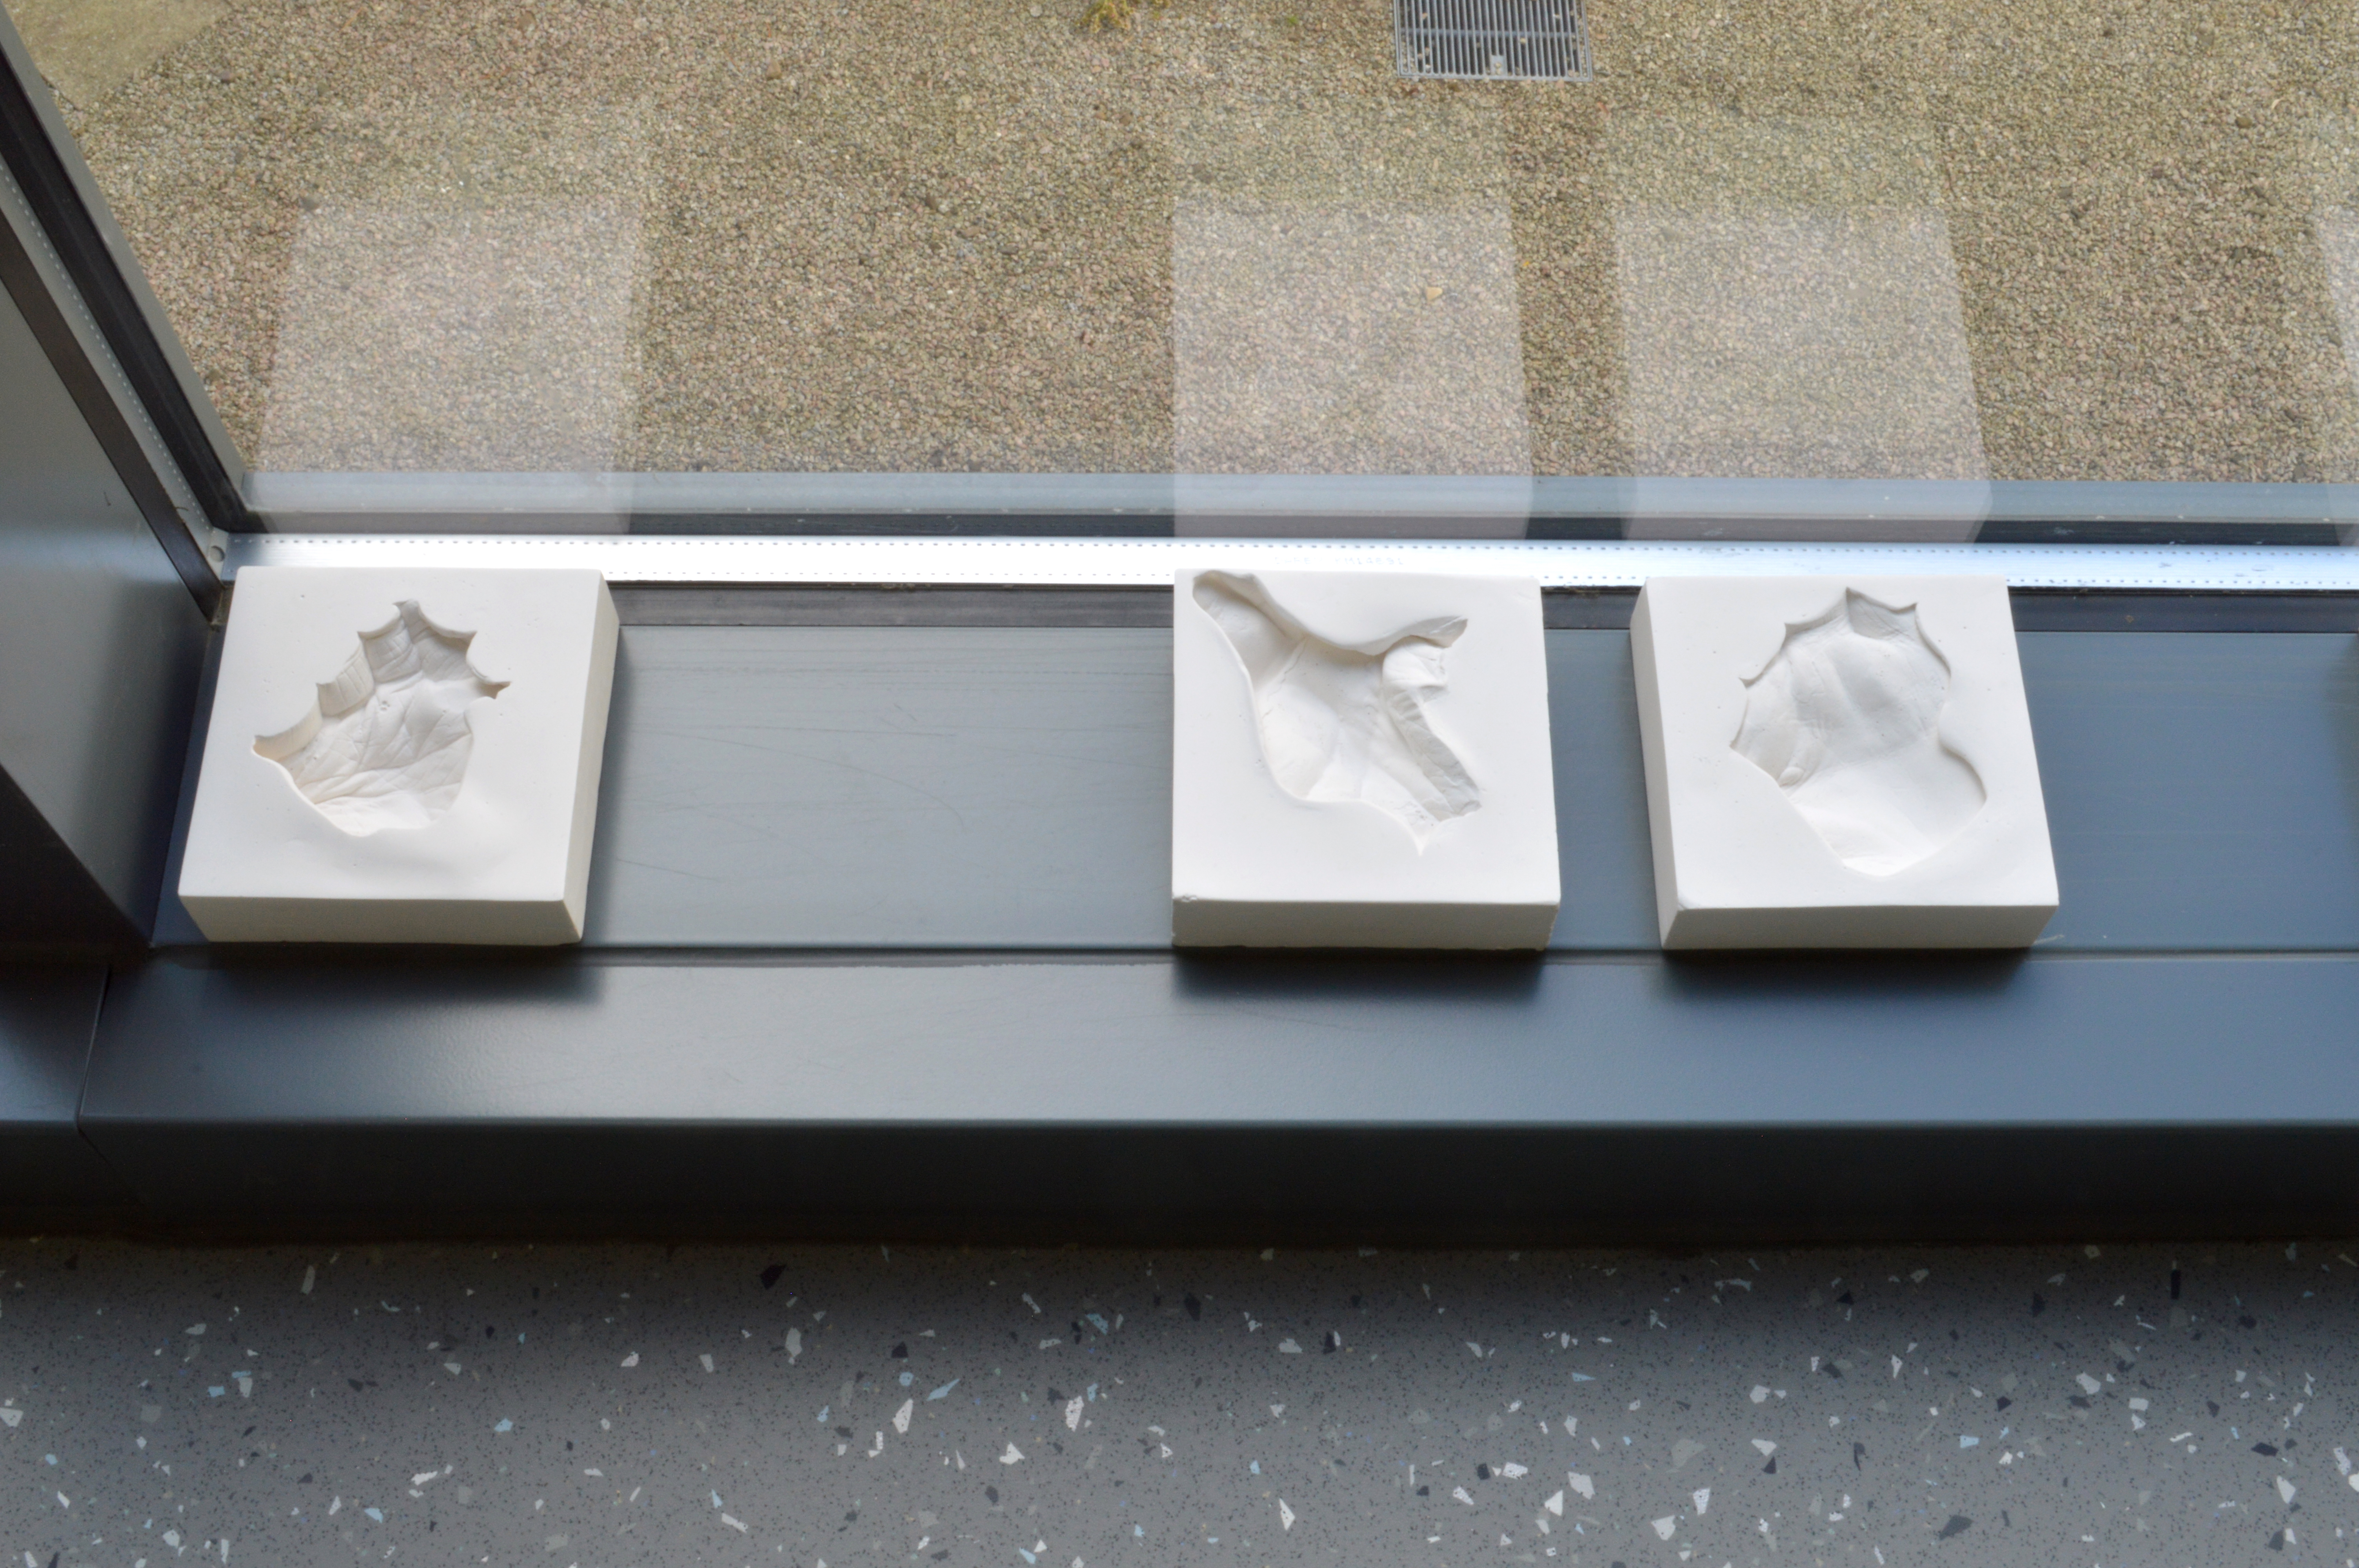 Close up of the window ledge showing three plaster blocks. Each has a unique indent of part of the palm of people's hands in it.